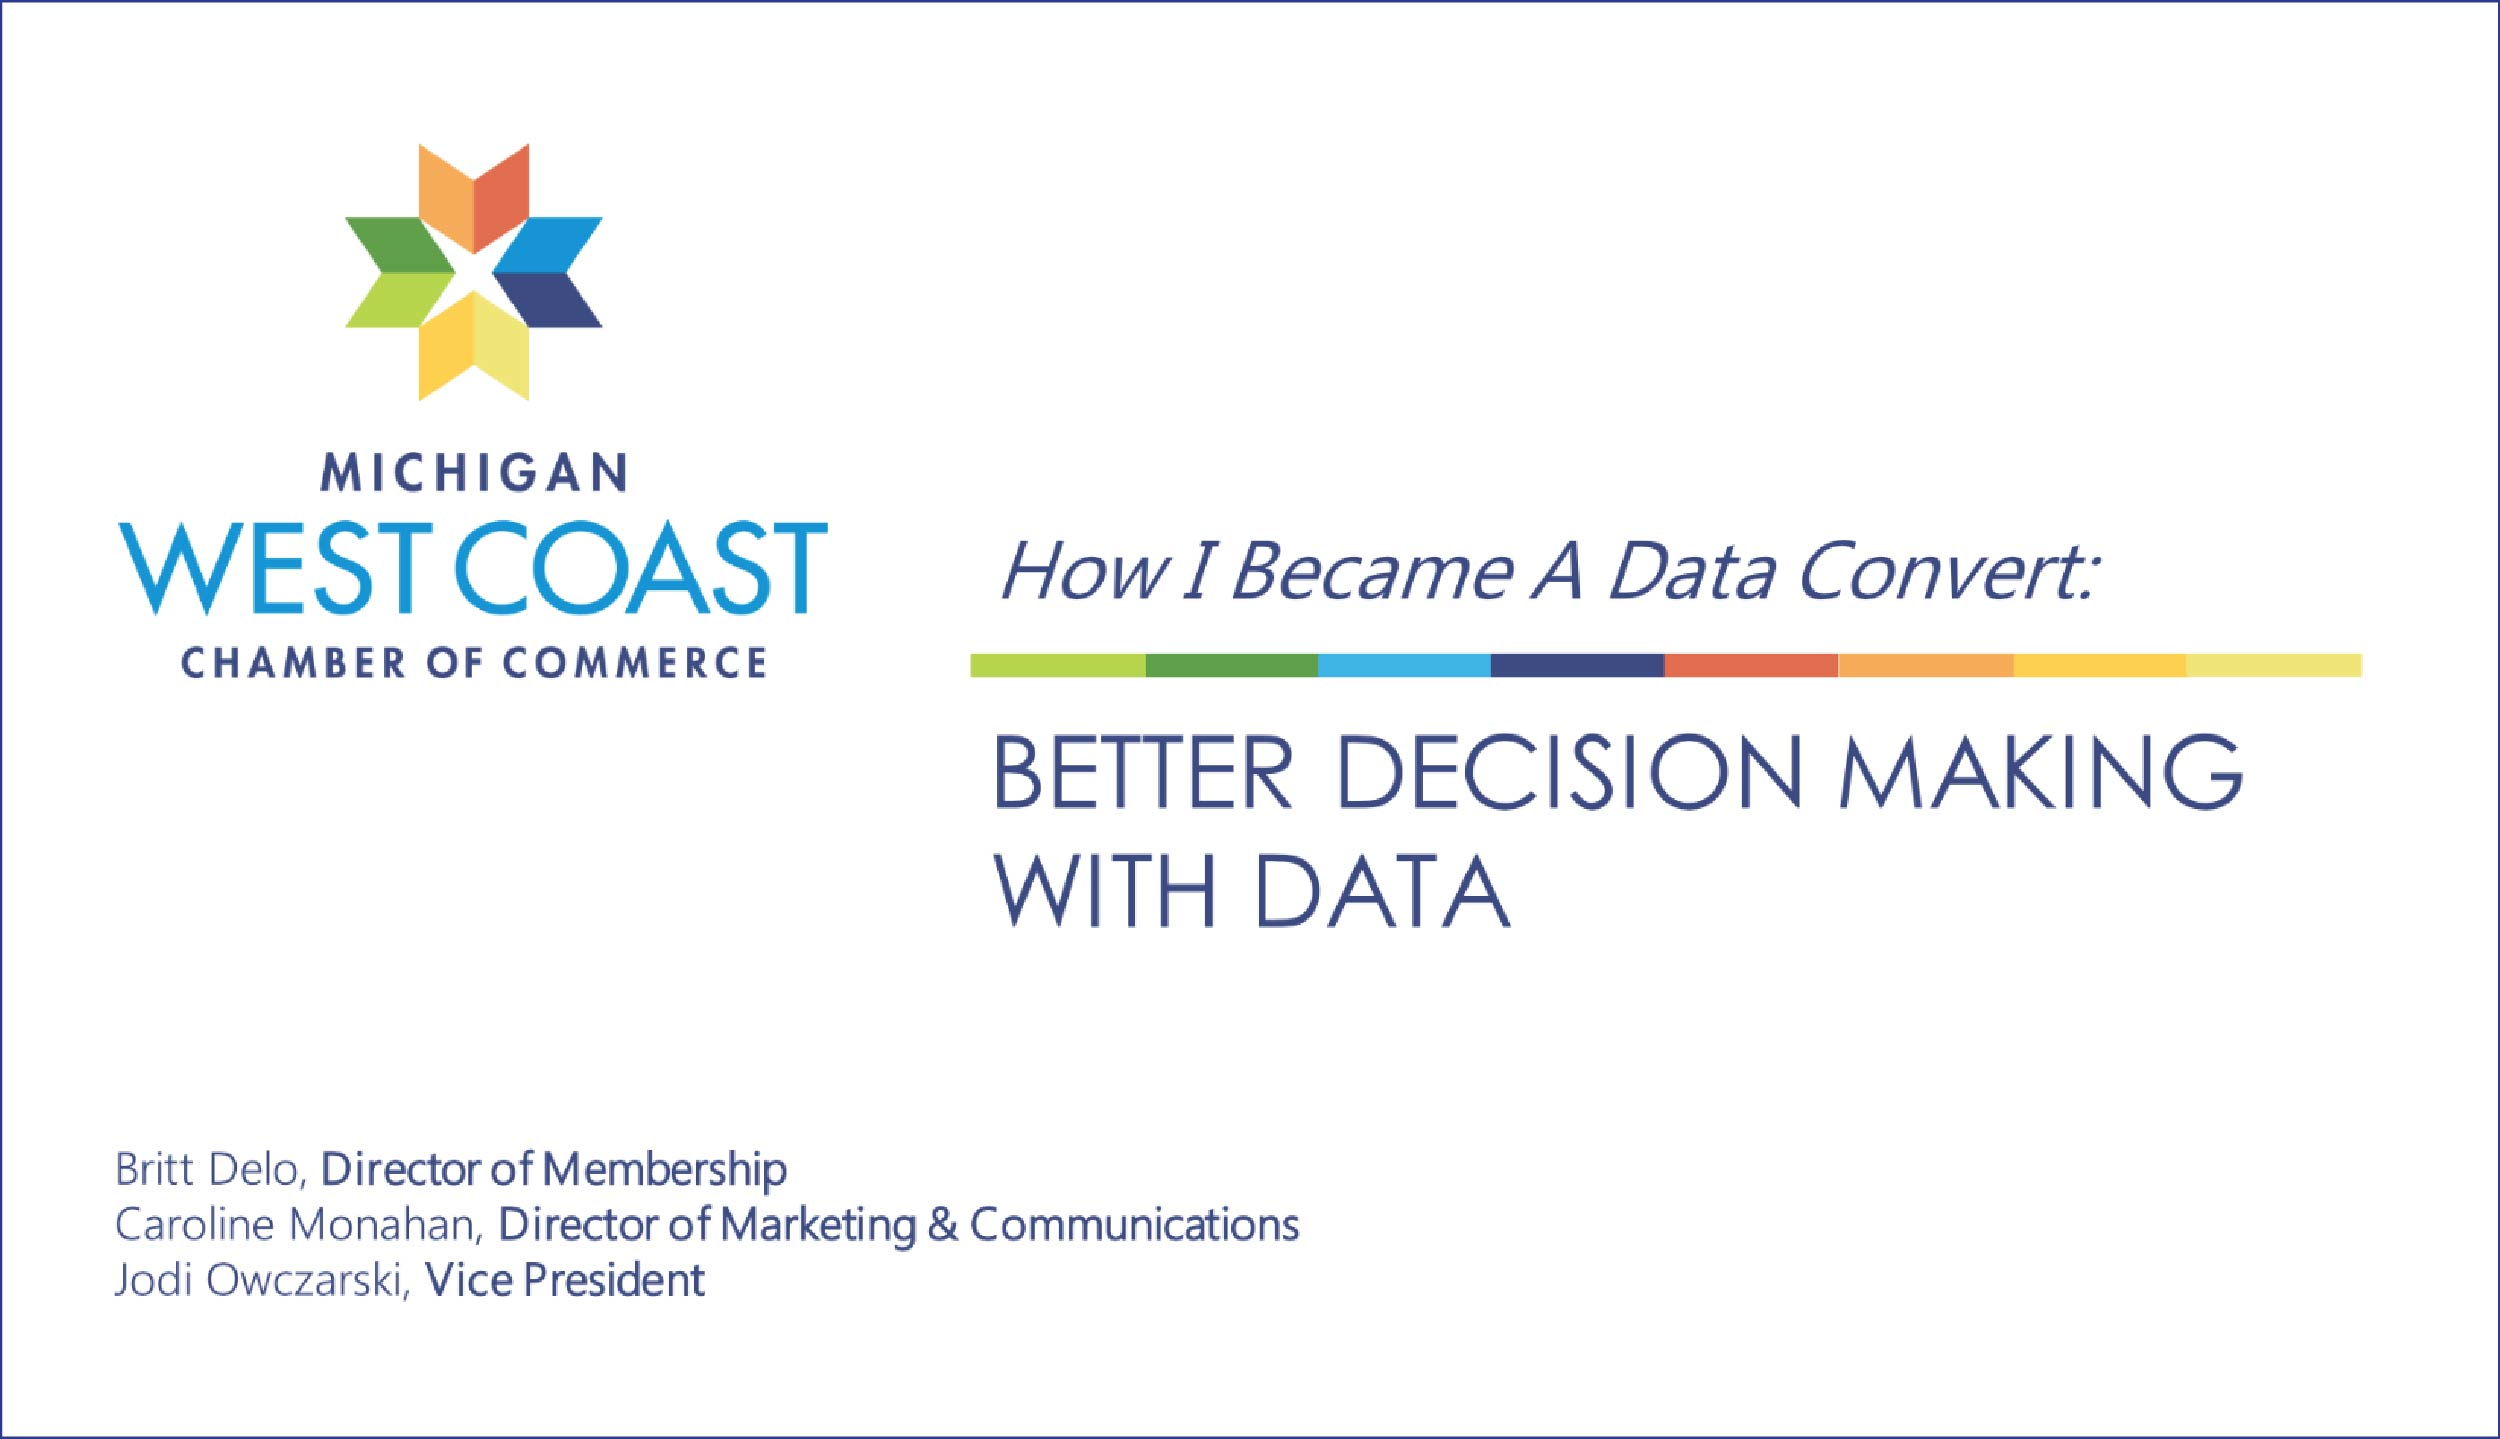 Better decision making with data